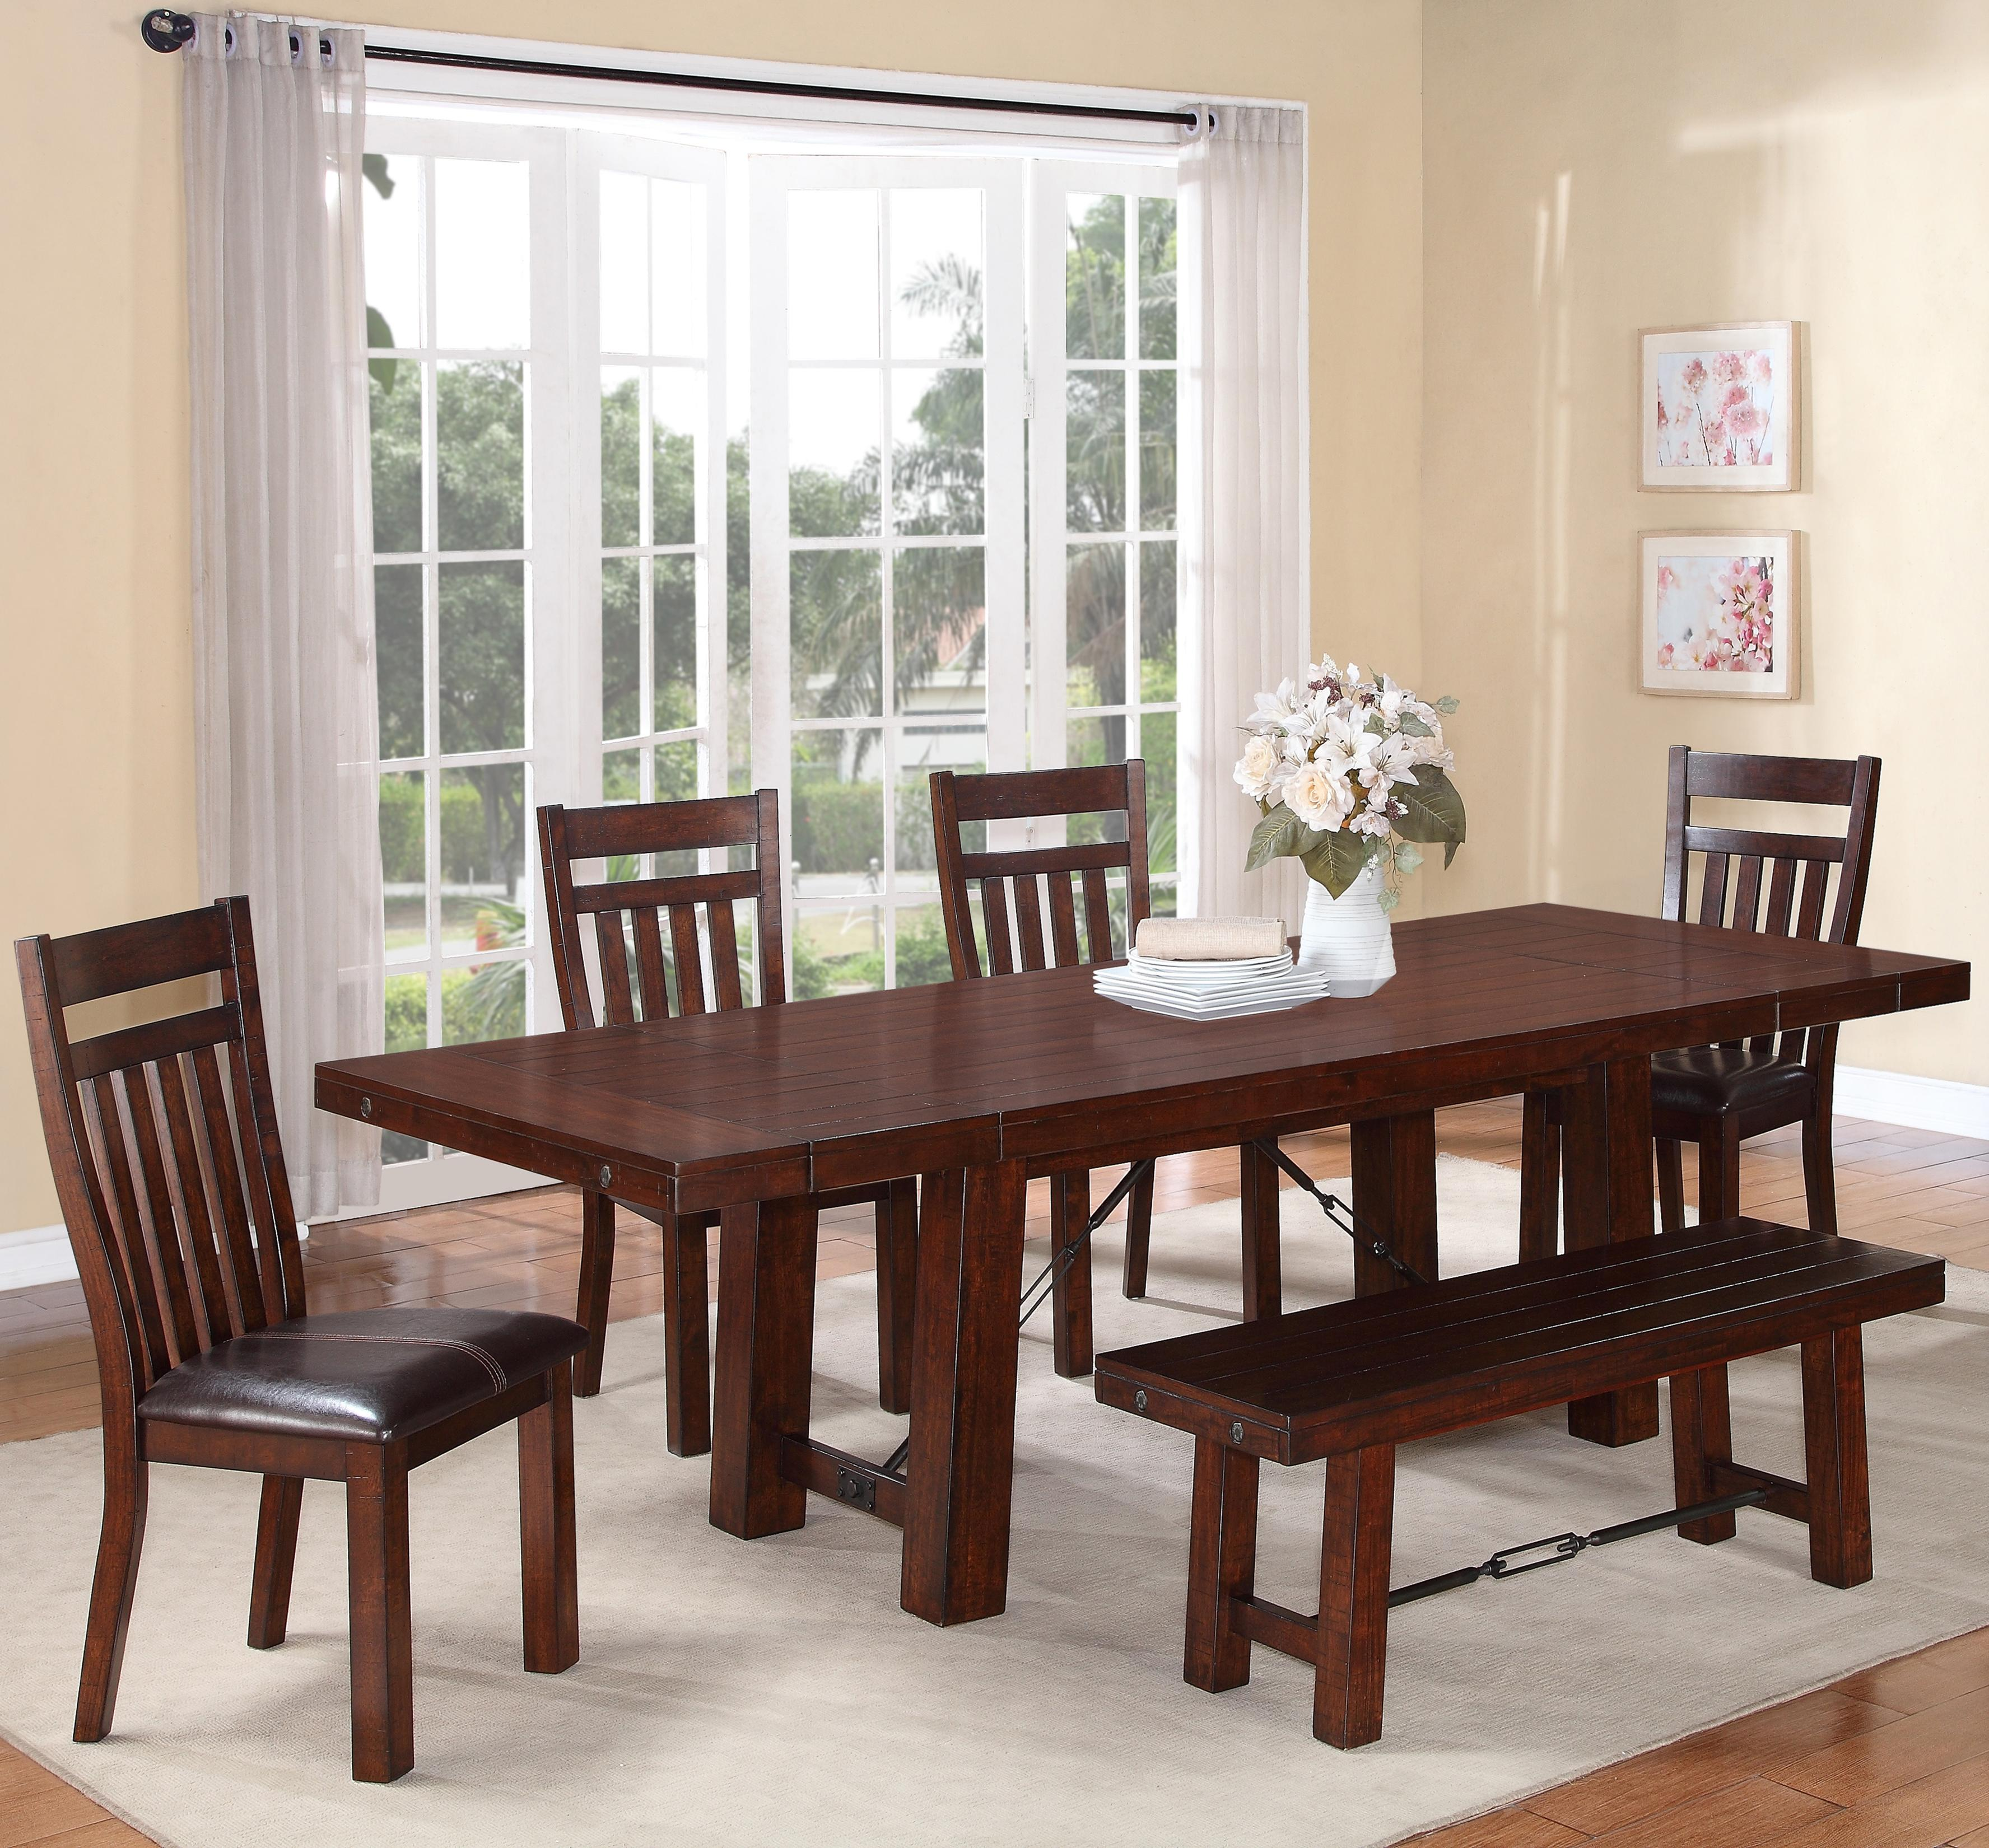 Charming Holland House 1258 6 Piece Dining Table Set